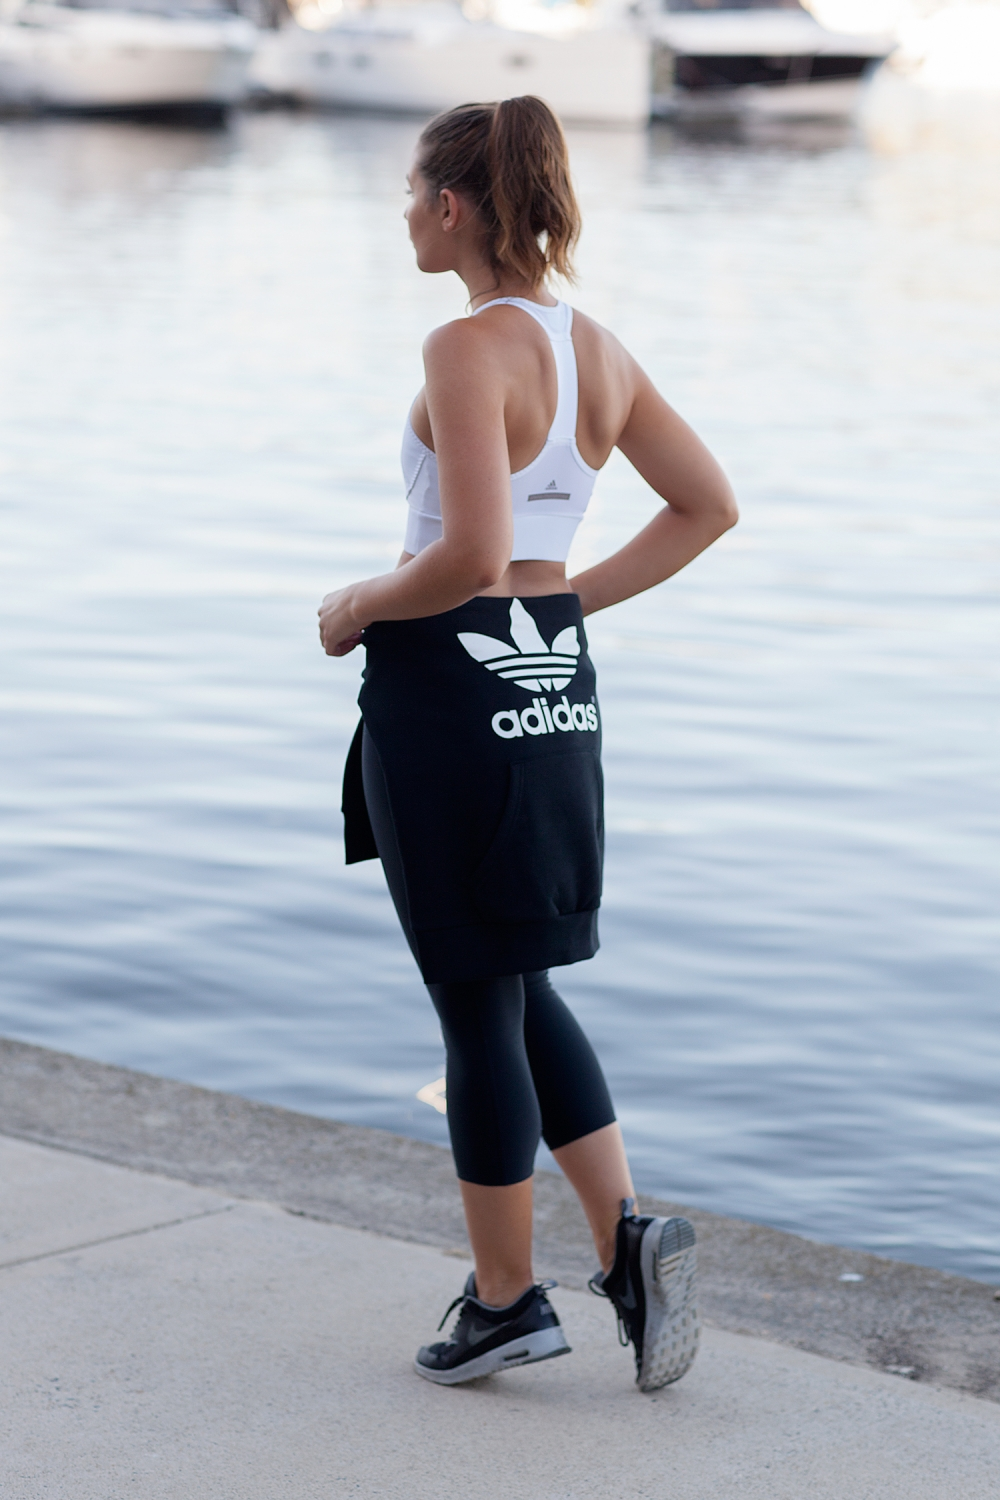 harper and harley_activewear_fitness_health_fashion_adidas_4